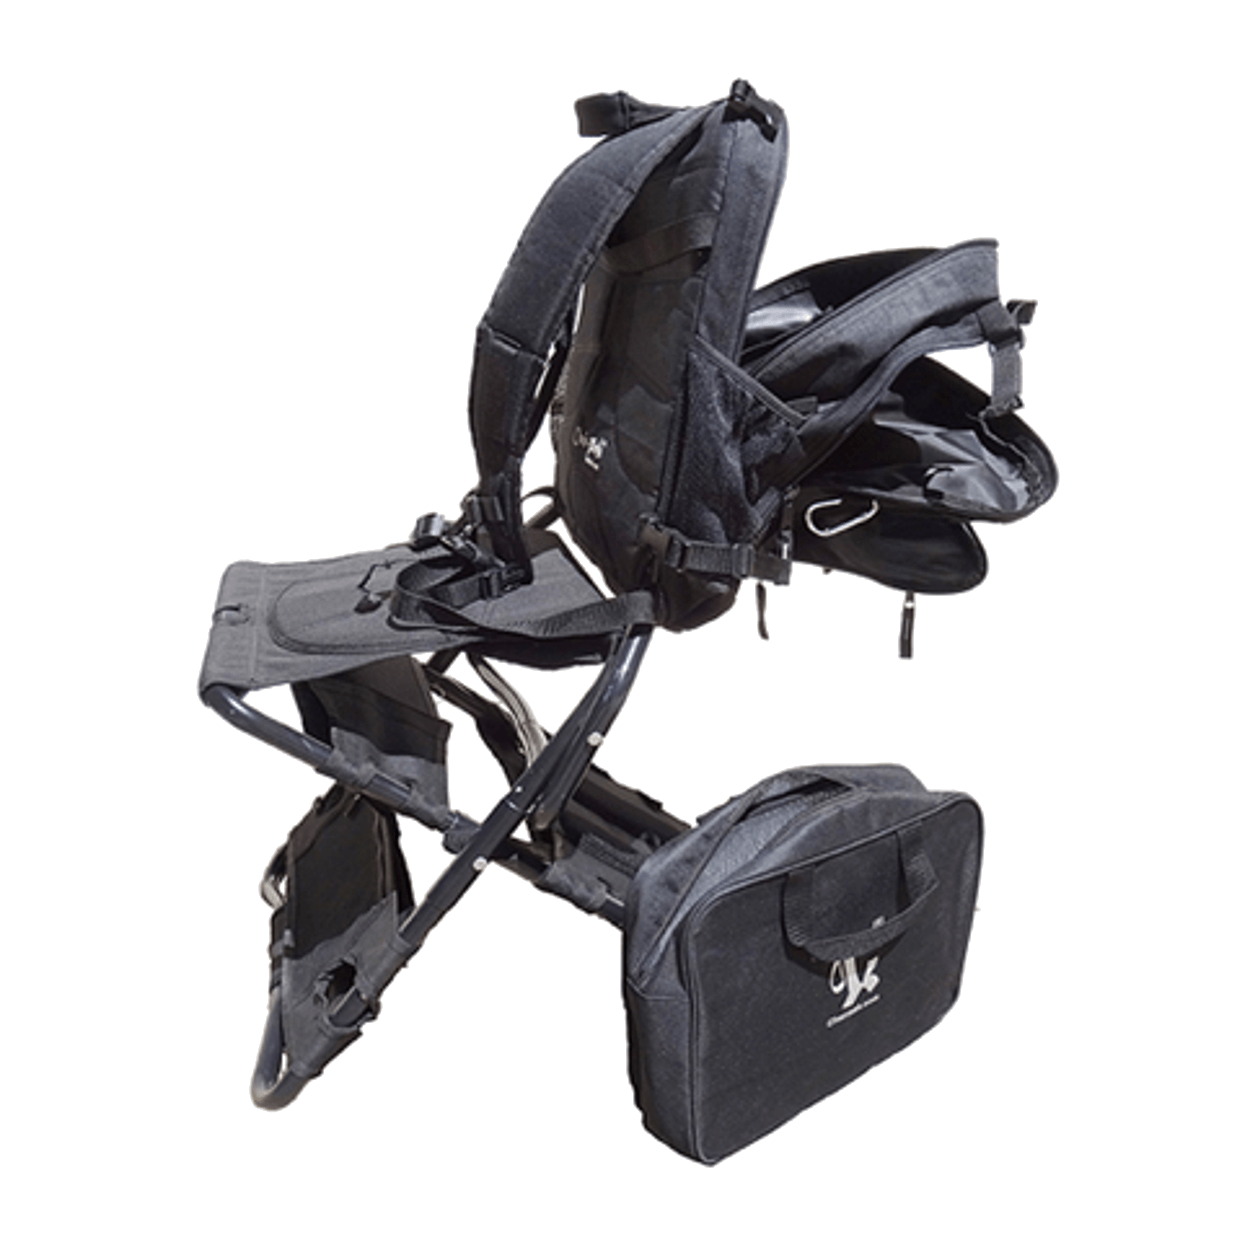 ChairPak  The Worlds Best BackpackCamping Chair